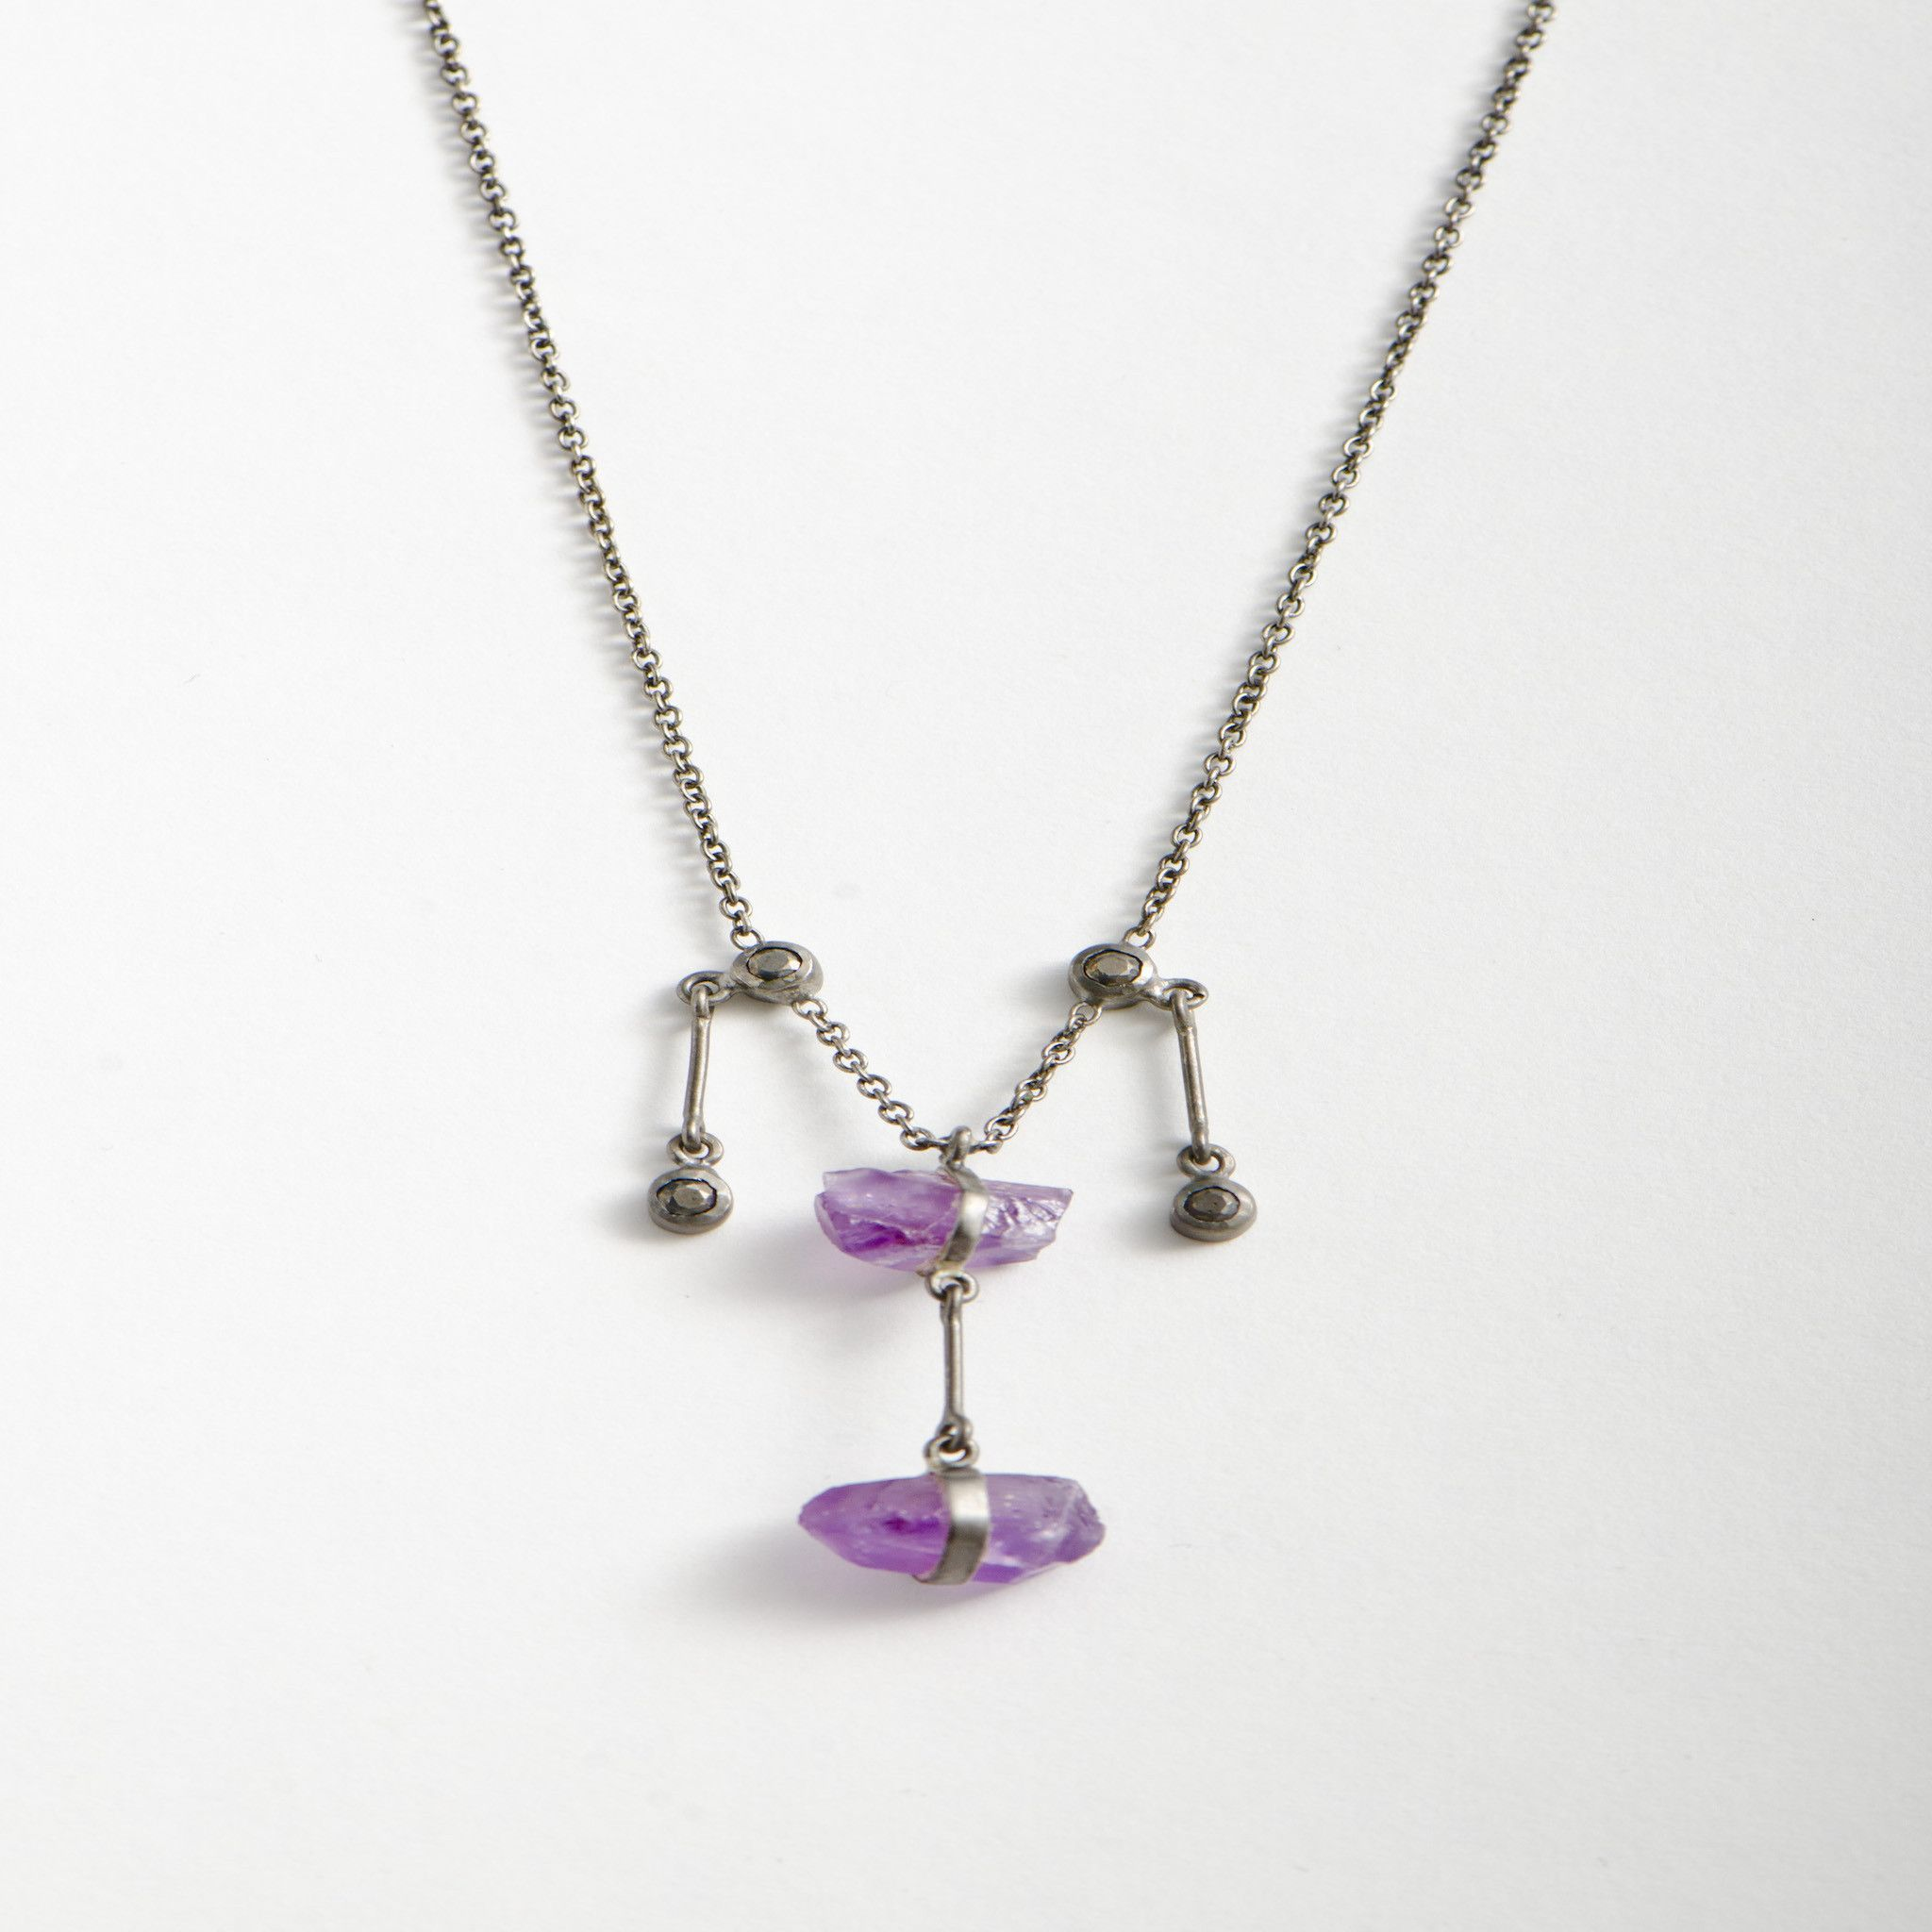 SuperNatural Amethyst & Hematite - Satin Gunmetal Till Necklace